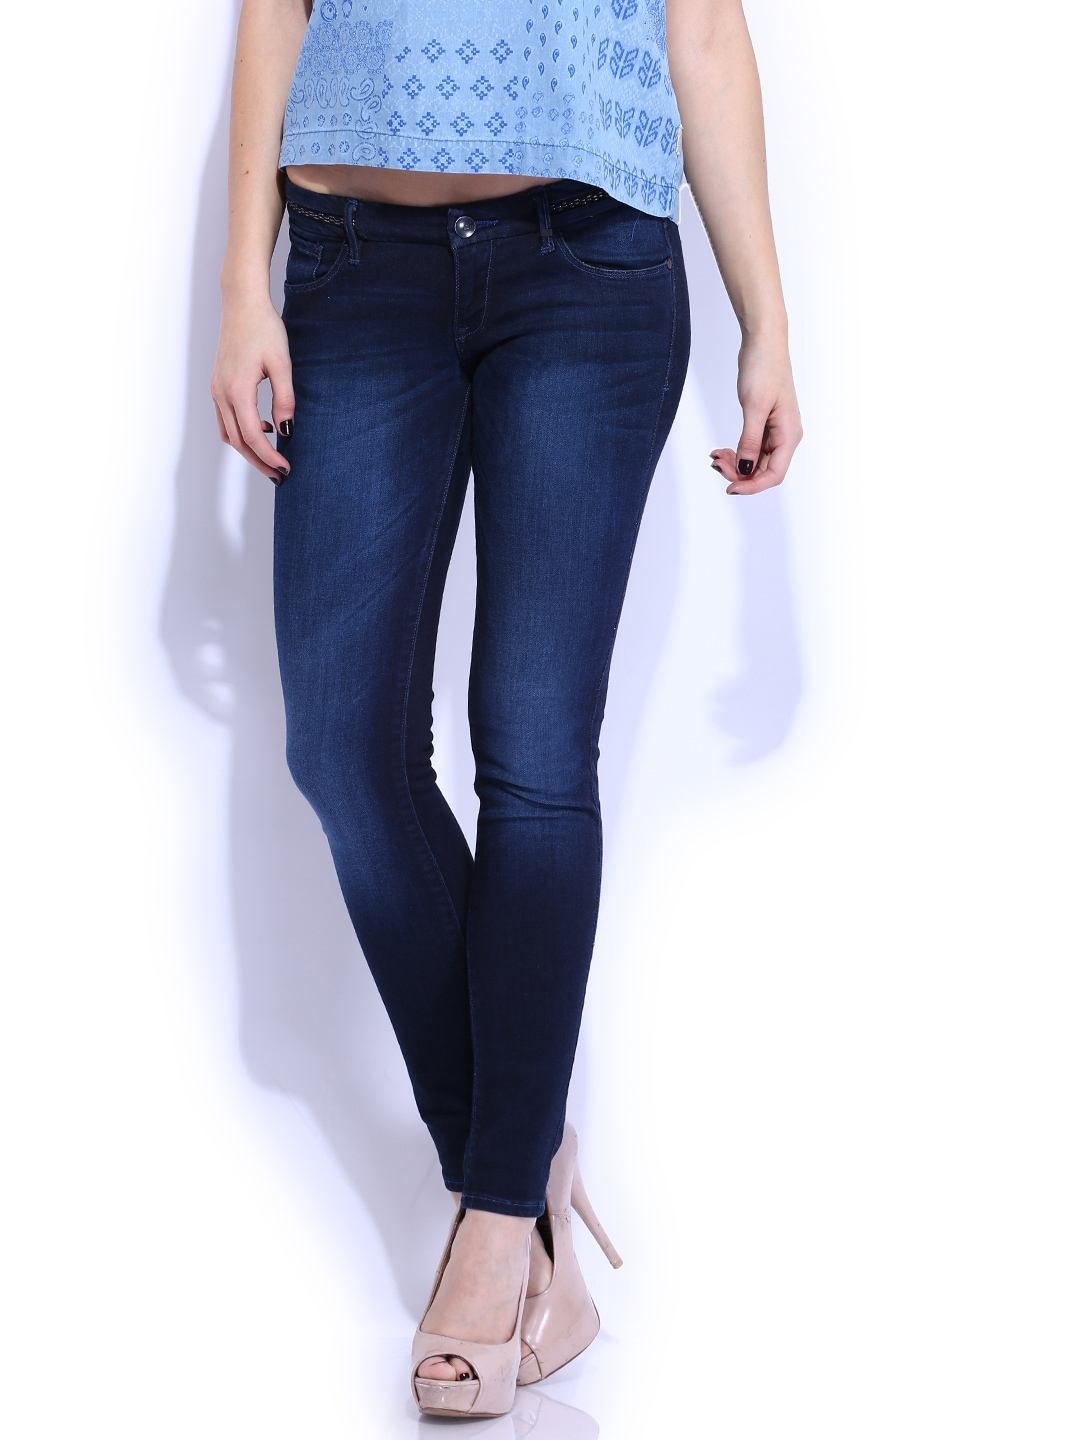 lee cooper jeans for women - photo #41